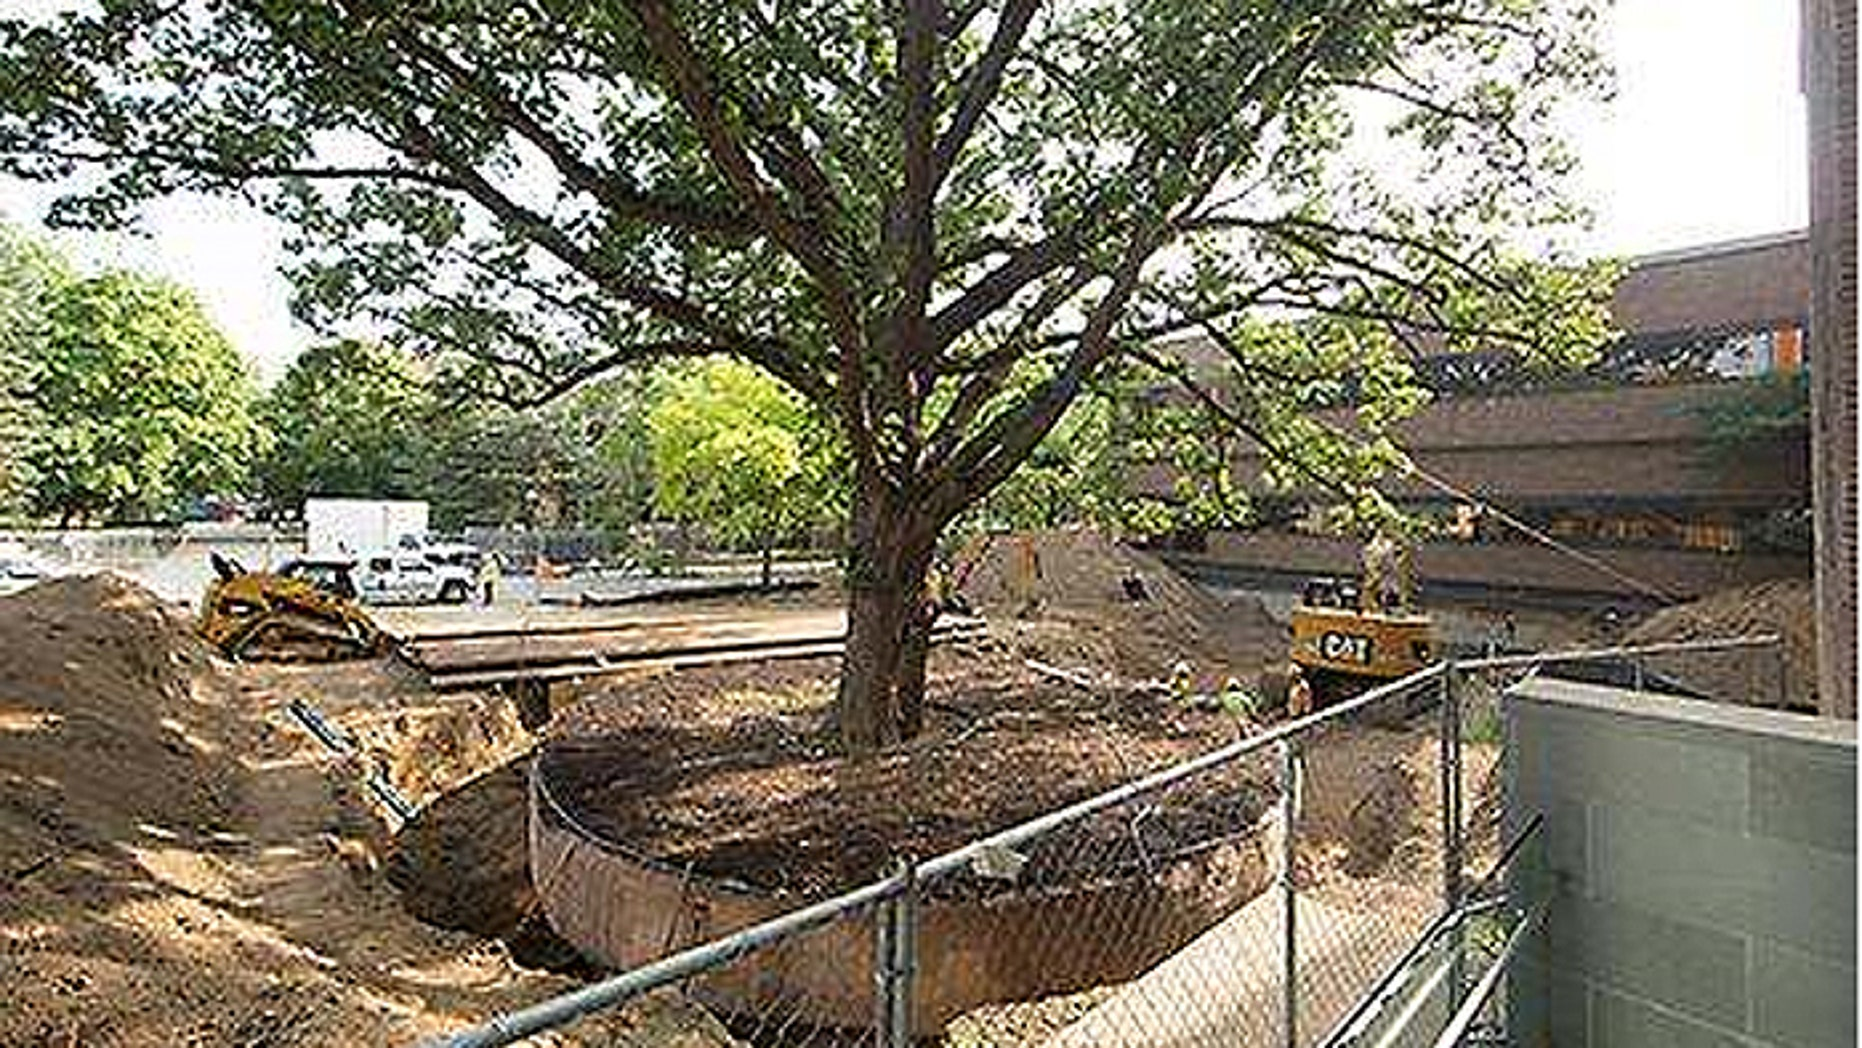 The burr oak has stood for as long as 300 years, but now it is in the way of an expansion of the University of Michigan's business school. (Courtesy: University of Michigan)